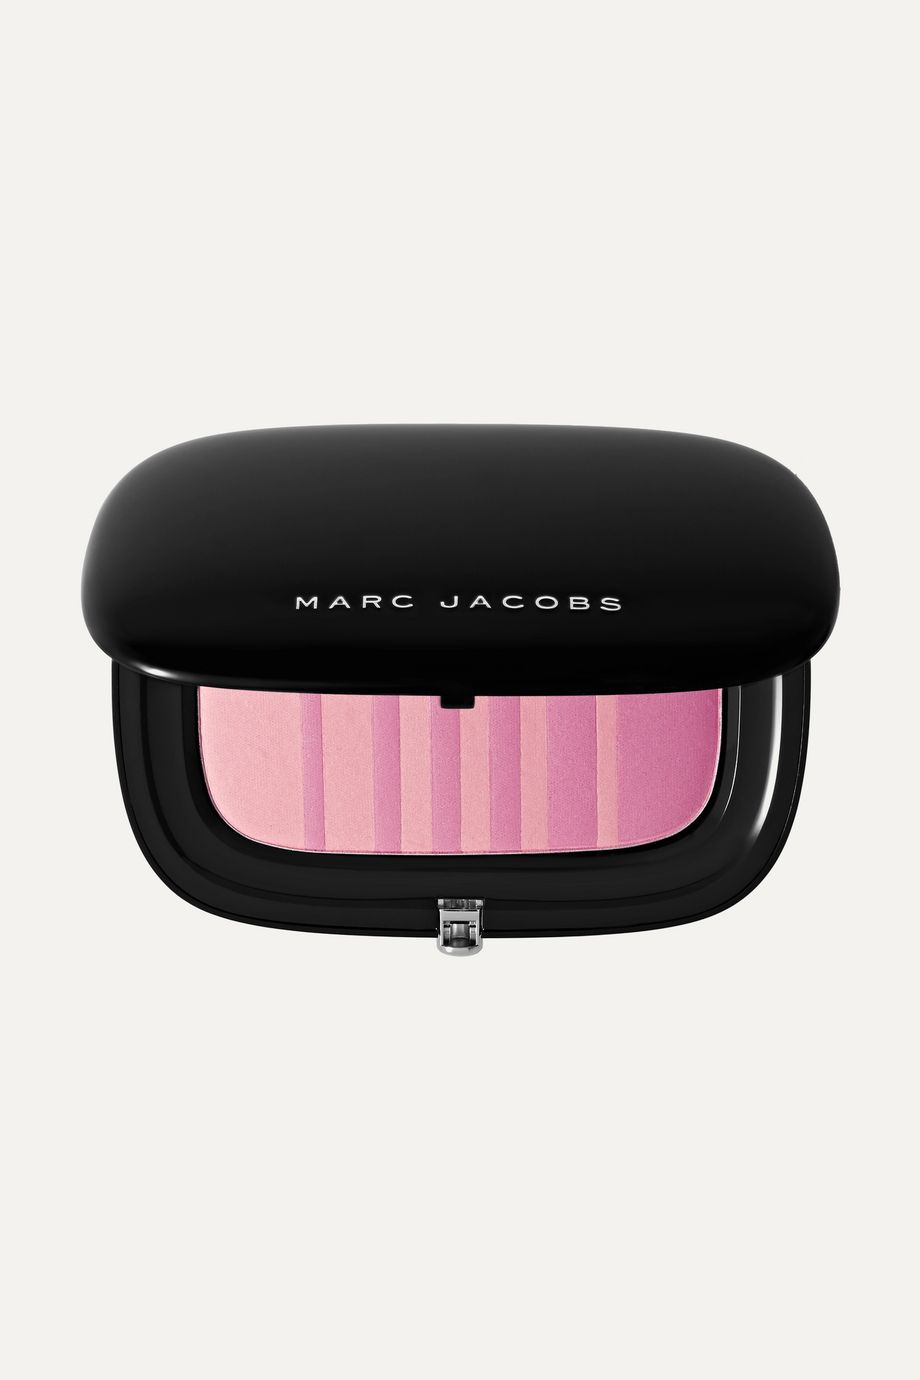 Marc Jacobs Beauty Air Blush Soft Glow Duo - Lush & Libido 500